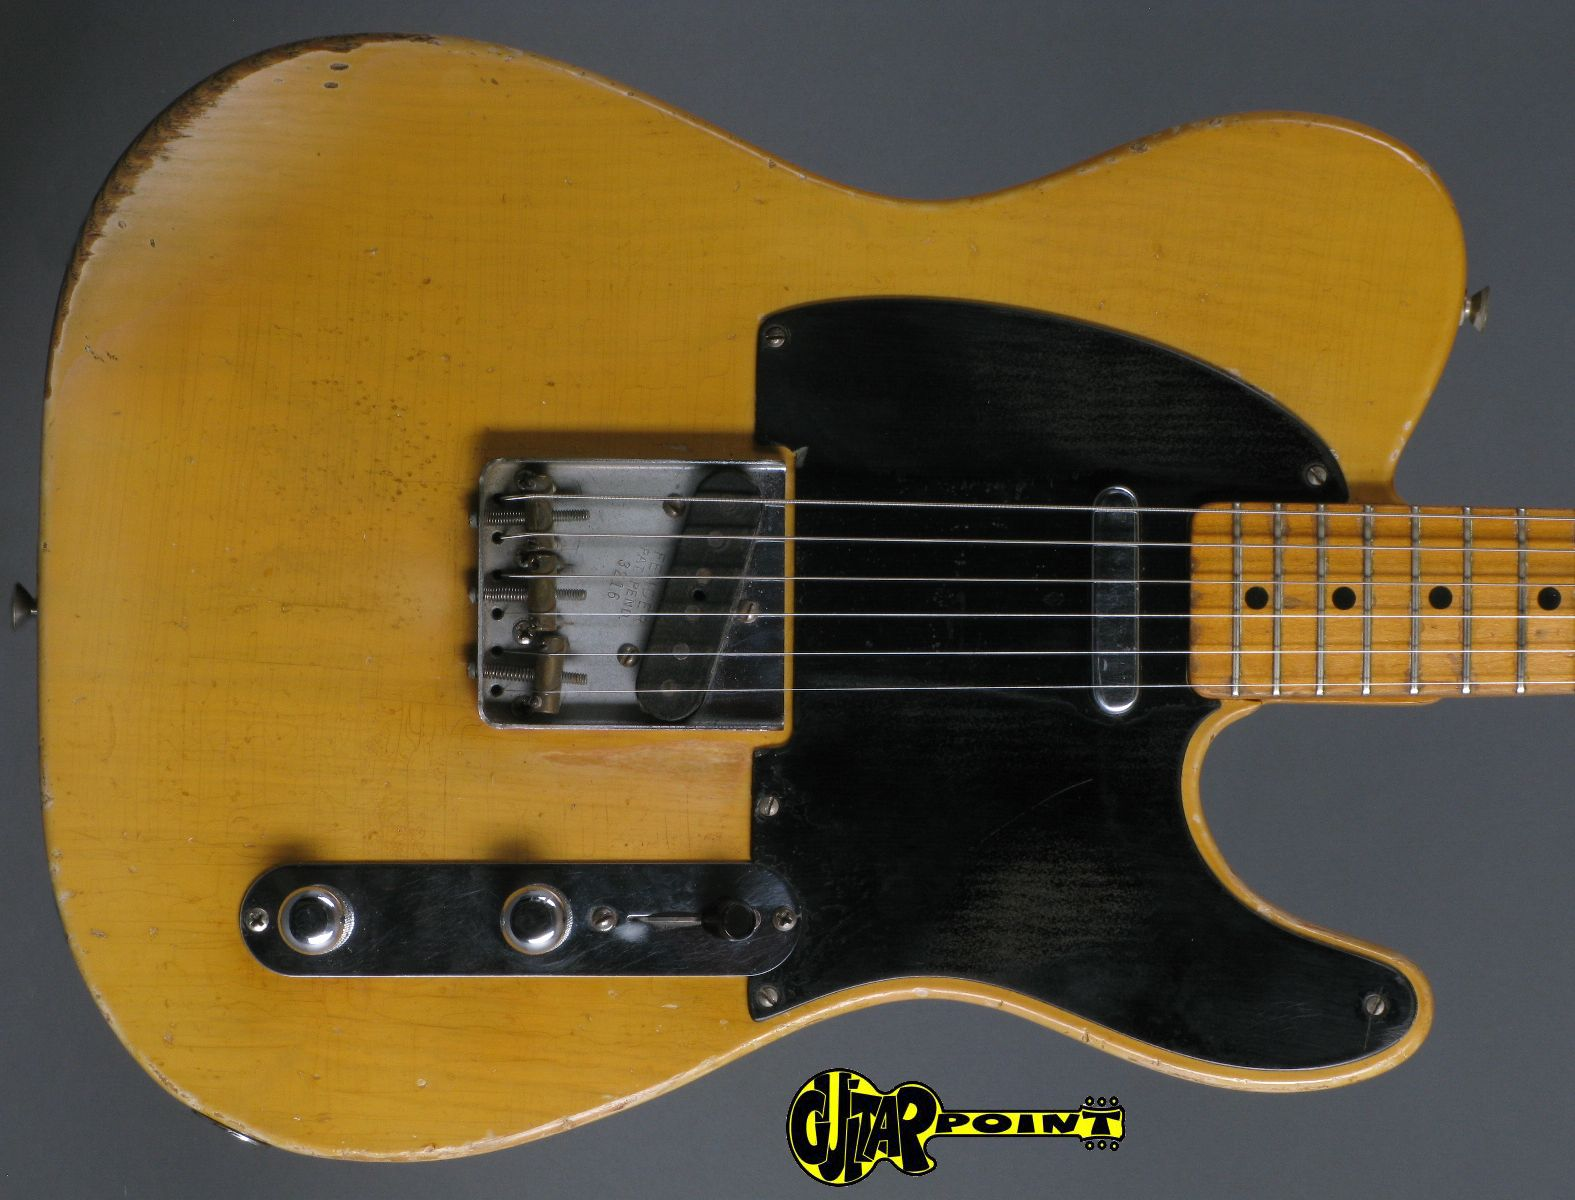 Diagrams Les Paul Wiring besides How To Wire Up Stomp Box Effects Pedal further Epiphone Les Paul Jr Wiring Diagram as well Fender Telecaster 1952 Blond 39117 additionally Double Neck Wiring Diagrams. on guitar switch wiring